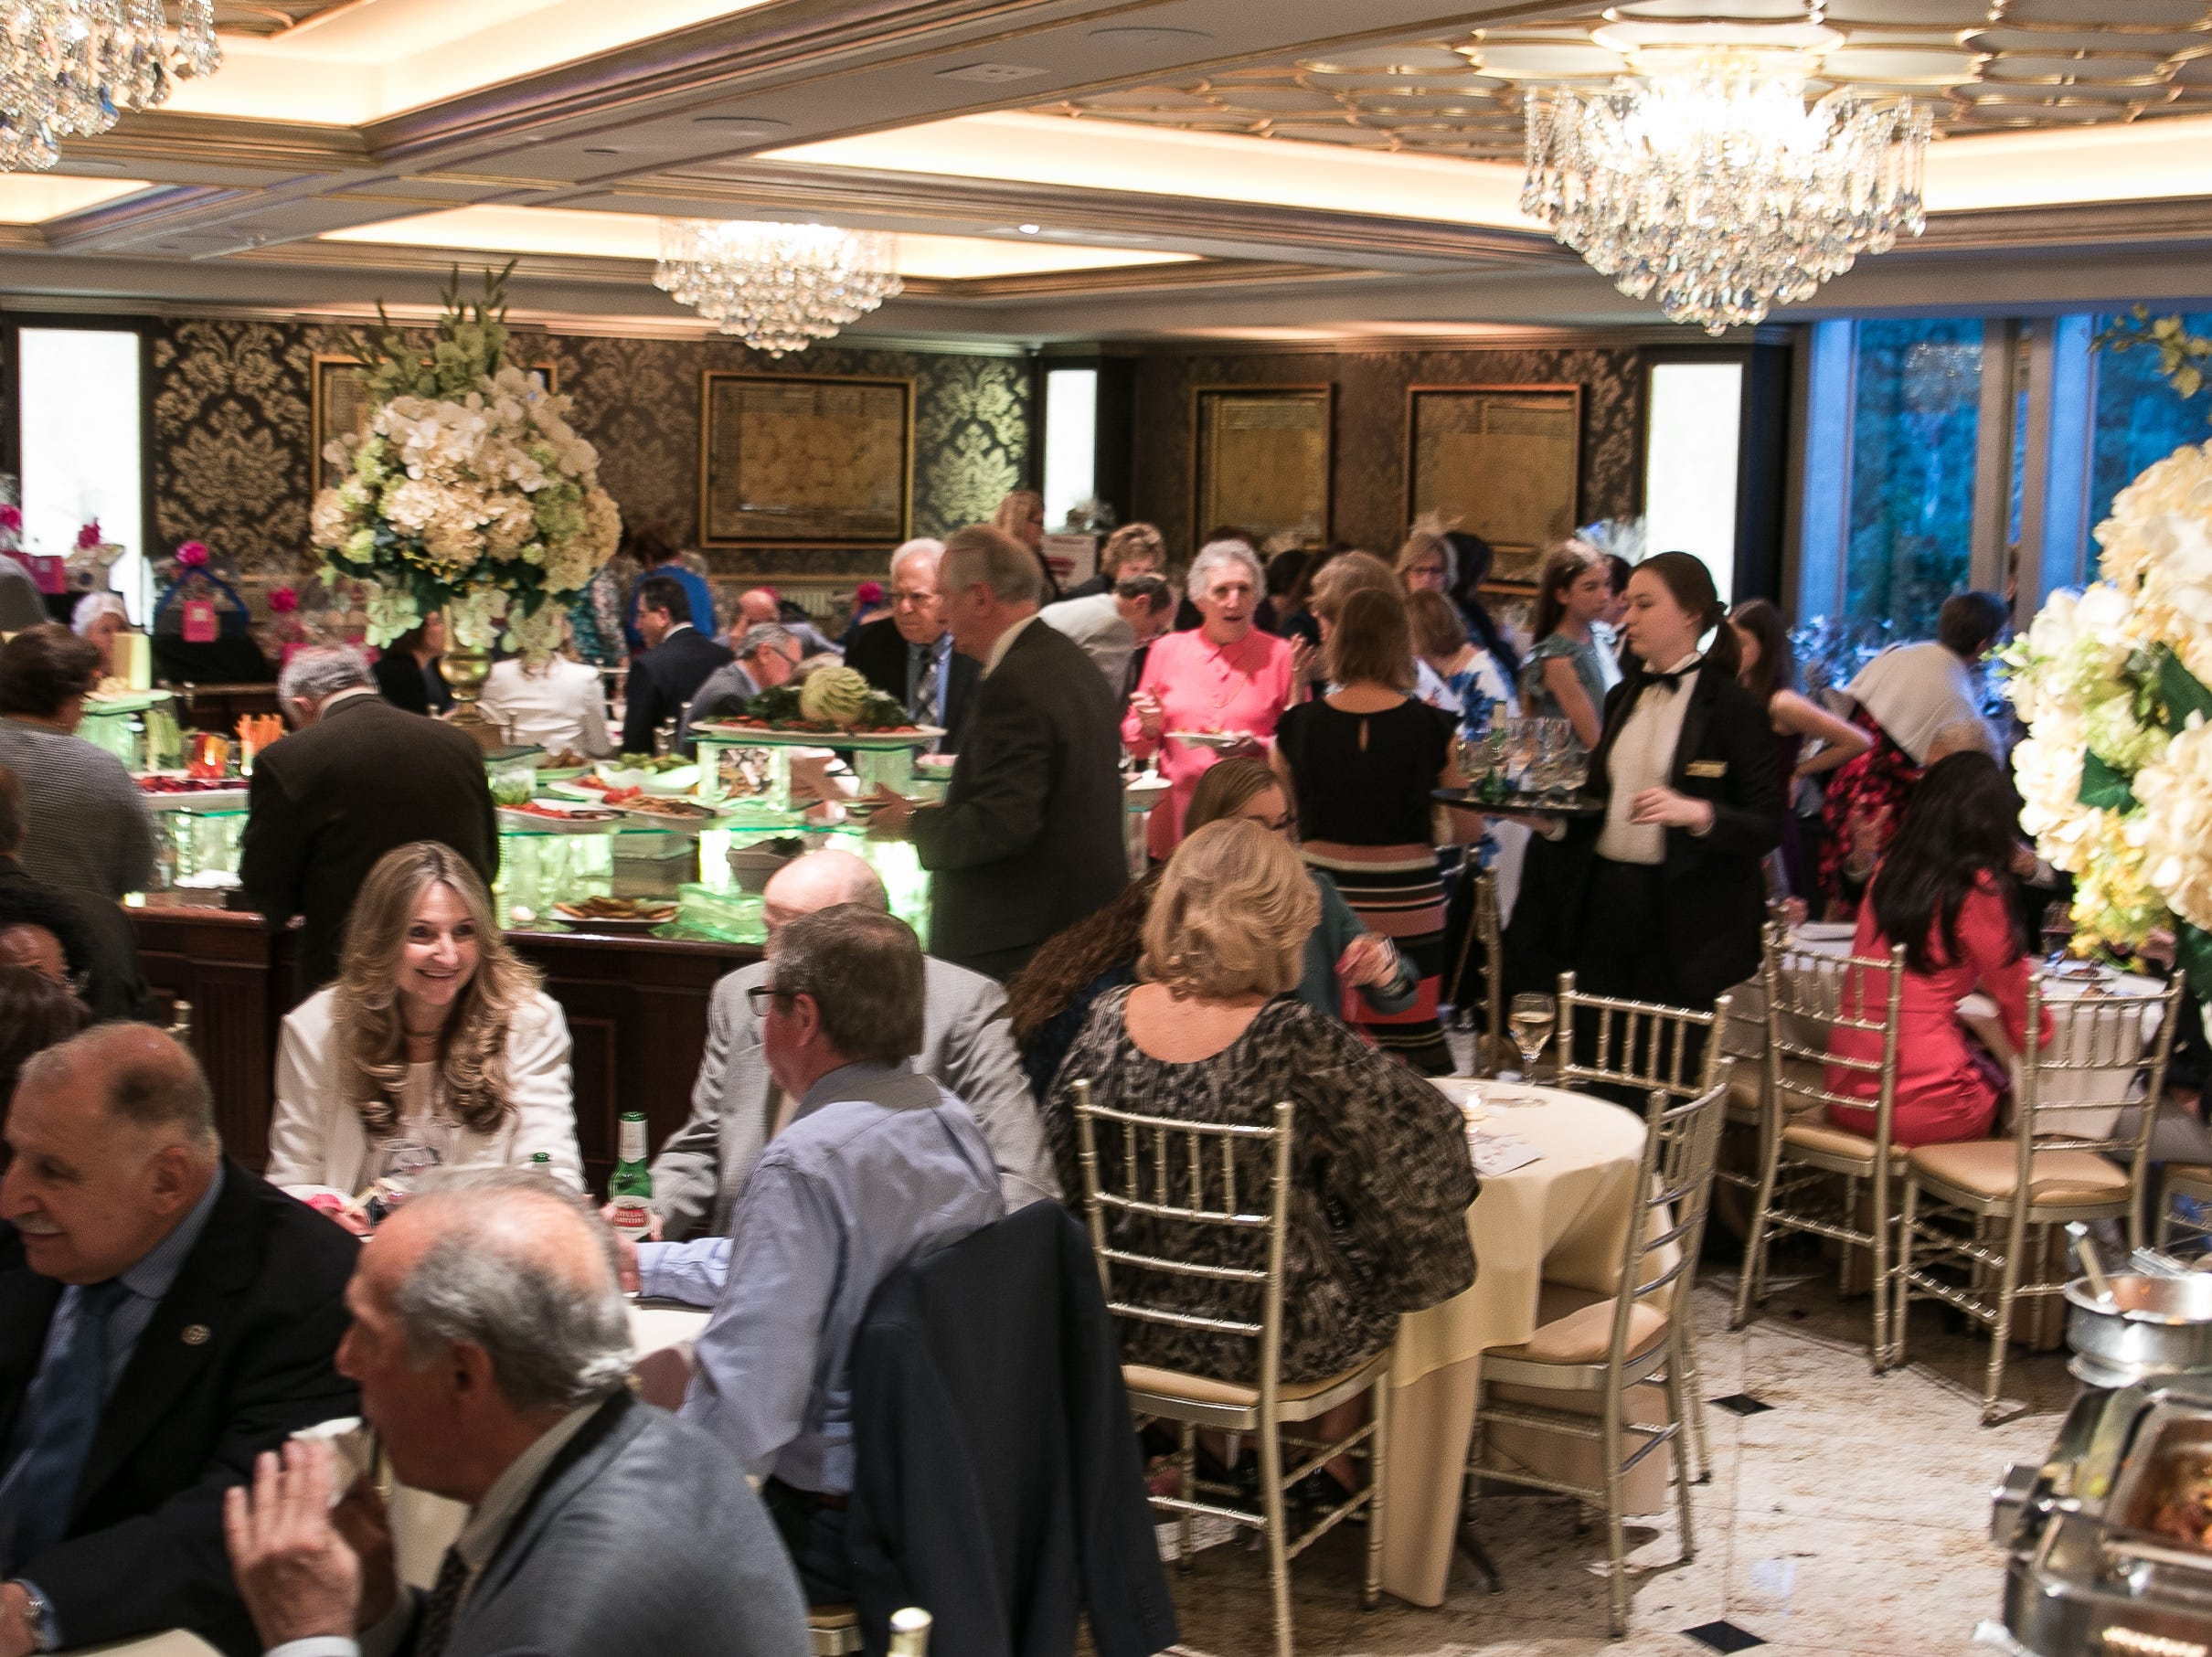 New Hope, a Pregnancy Resource Center, held their annual gala at Seasons in Washington Township. 04/05/2019